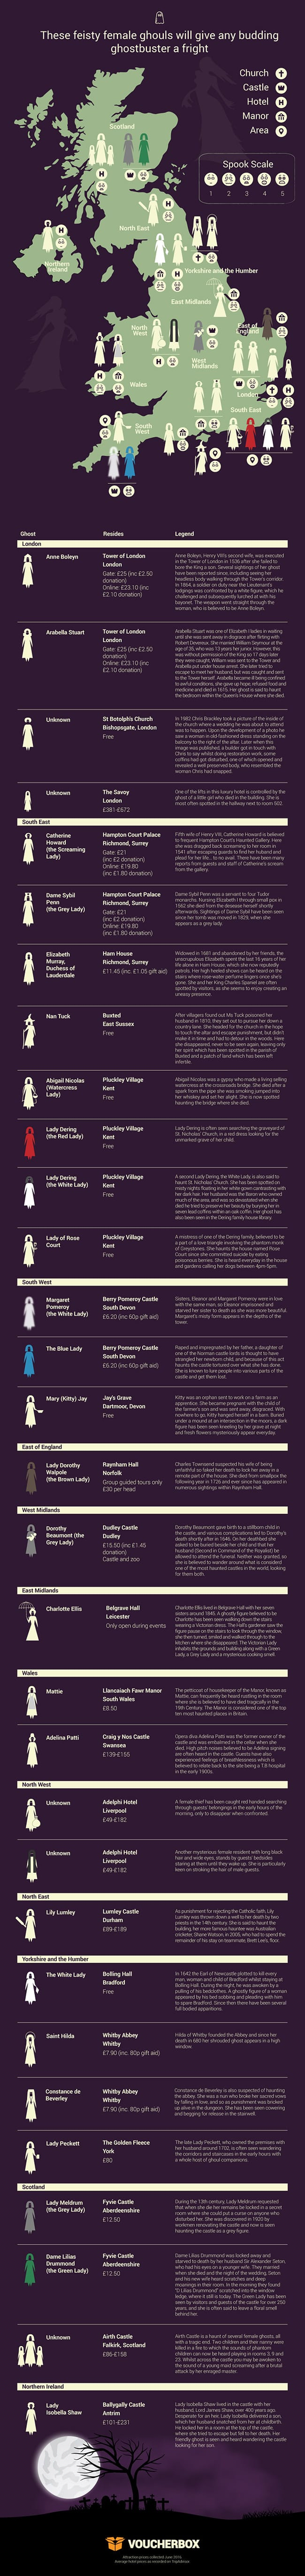 A ghoulish guide to the most haunted hot spots in Britain Infographic